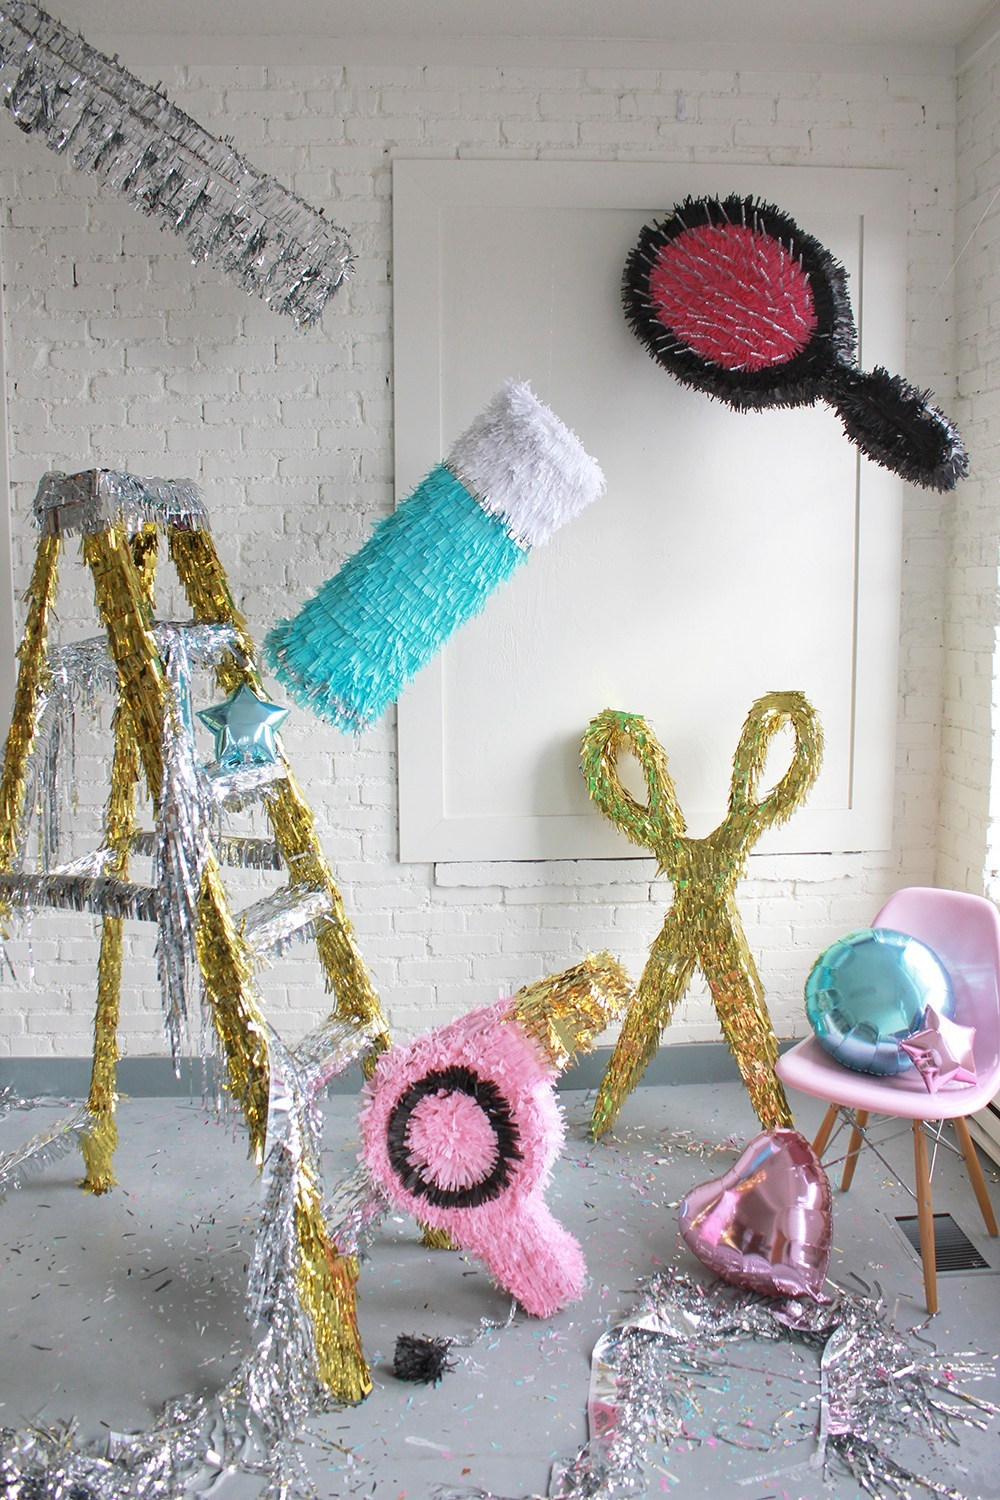 Hair-themed pinatas DIY Pinatas For Every Kind Of Party You Can Make At Home